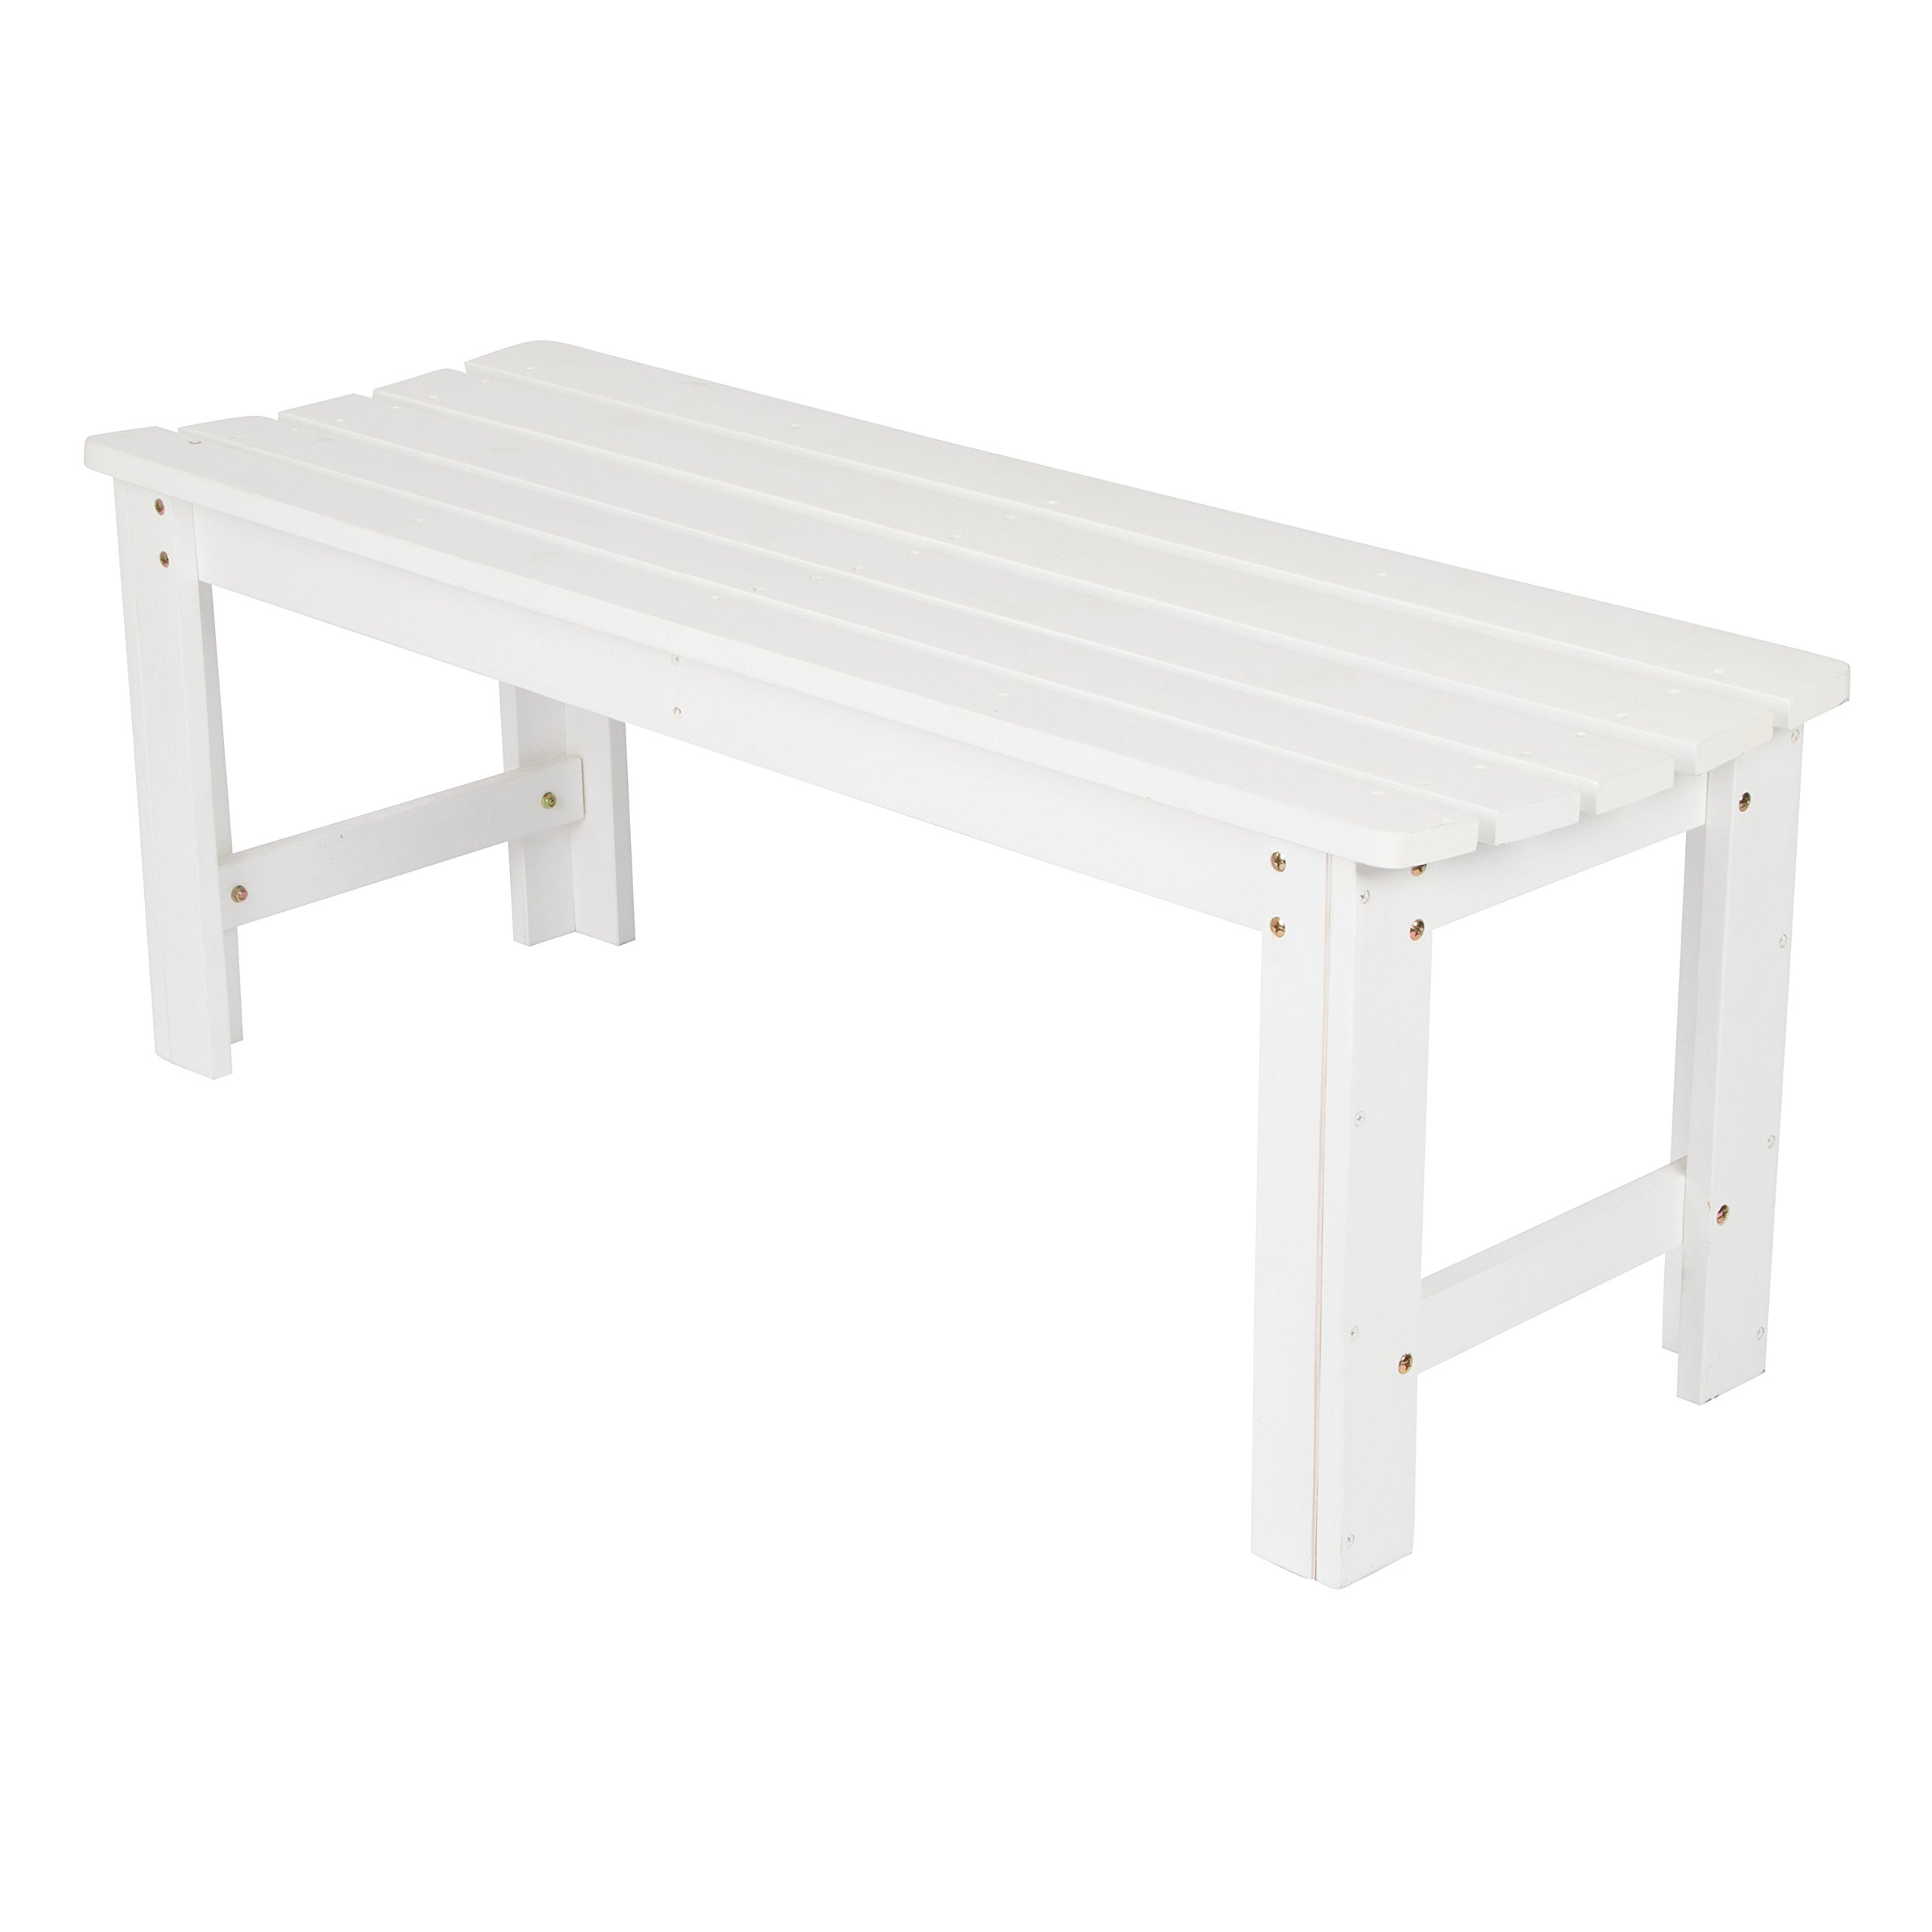 Shine Company Inc. 4204WT Backless Garden Bench, 4 Ft, White by Shine Company